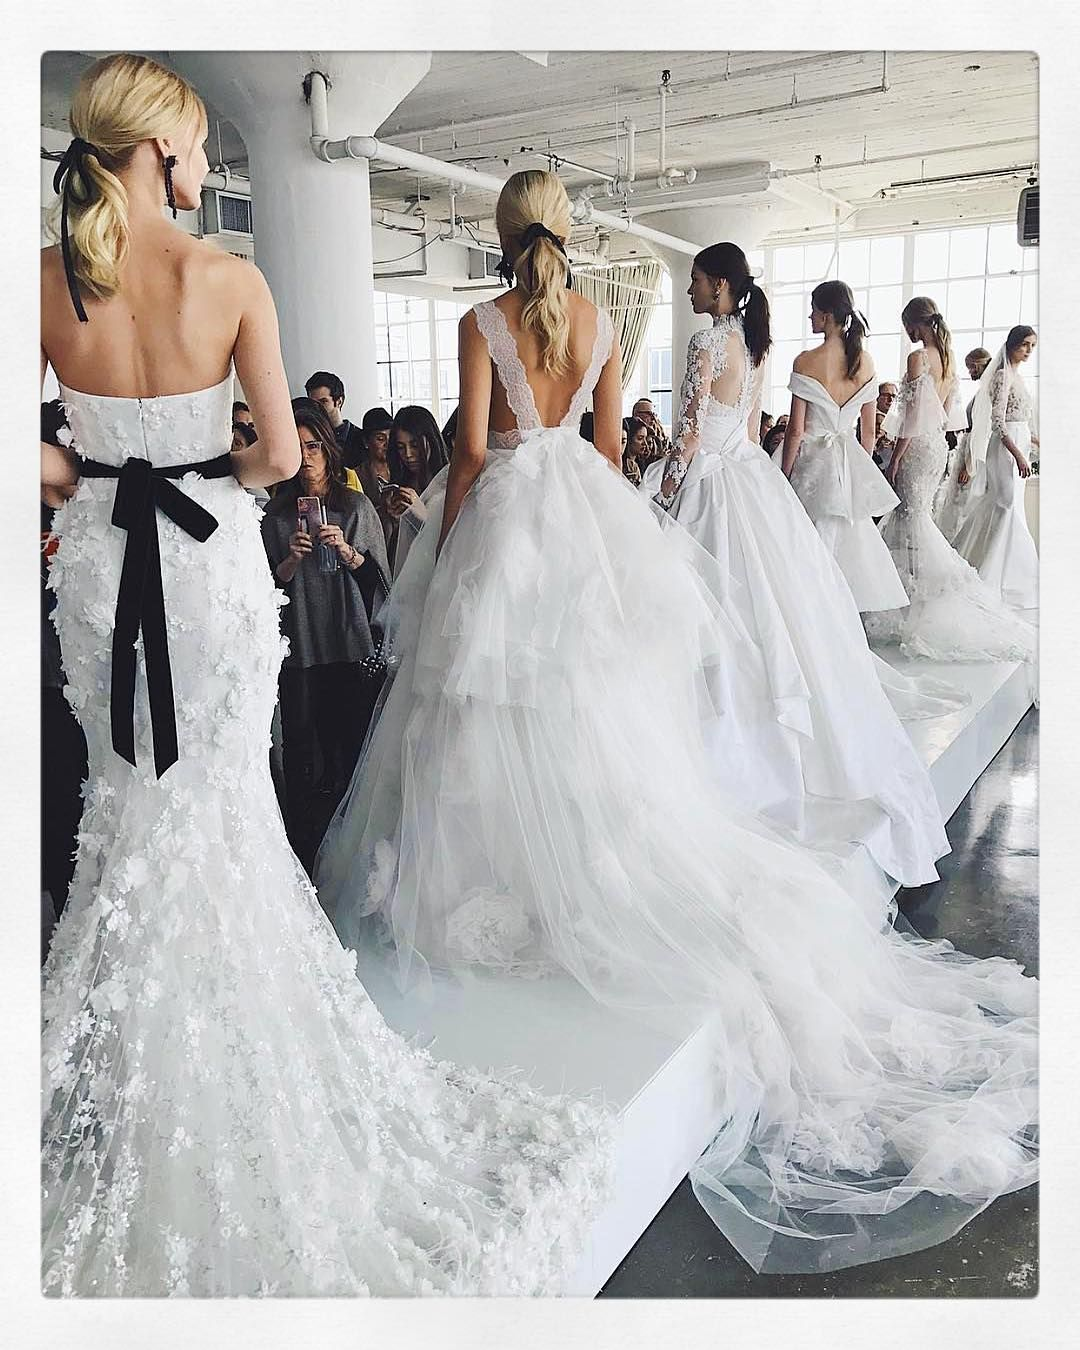 The marchesa bridal girls lined up at the ssmarchesabridal